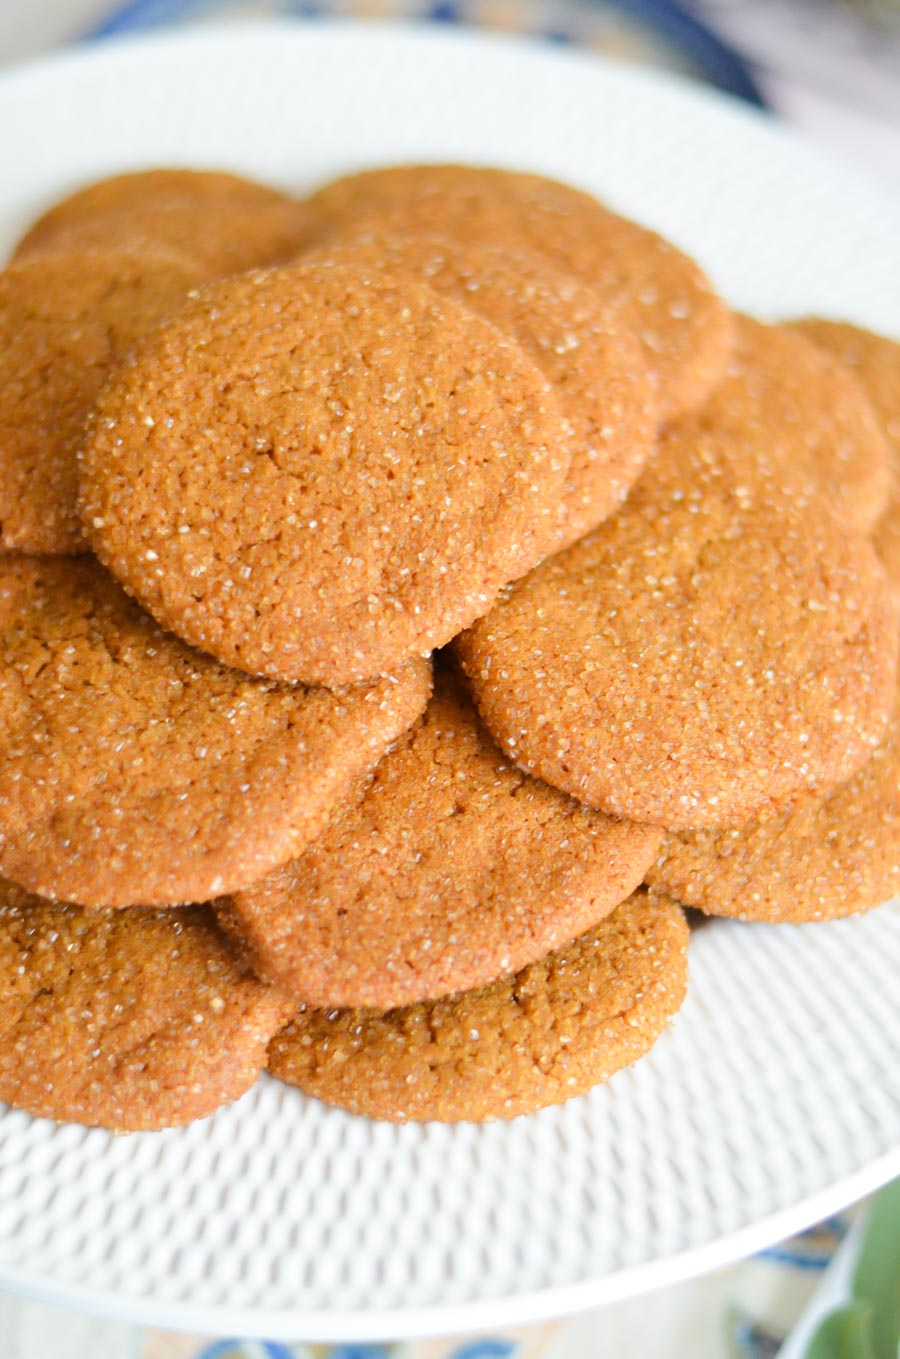 Ginger Cookies on a White platter